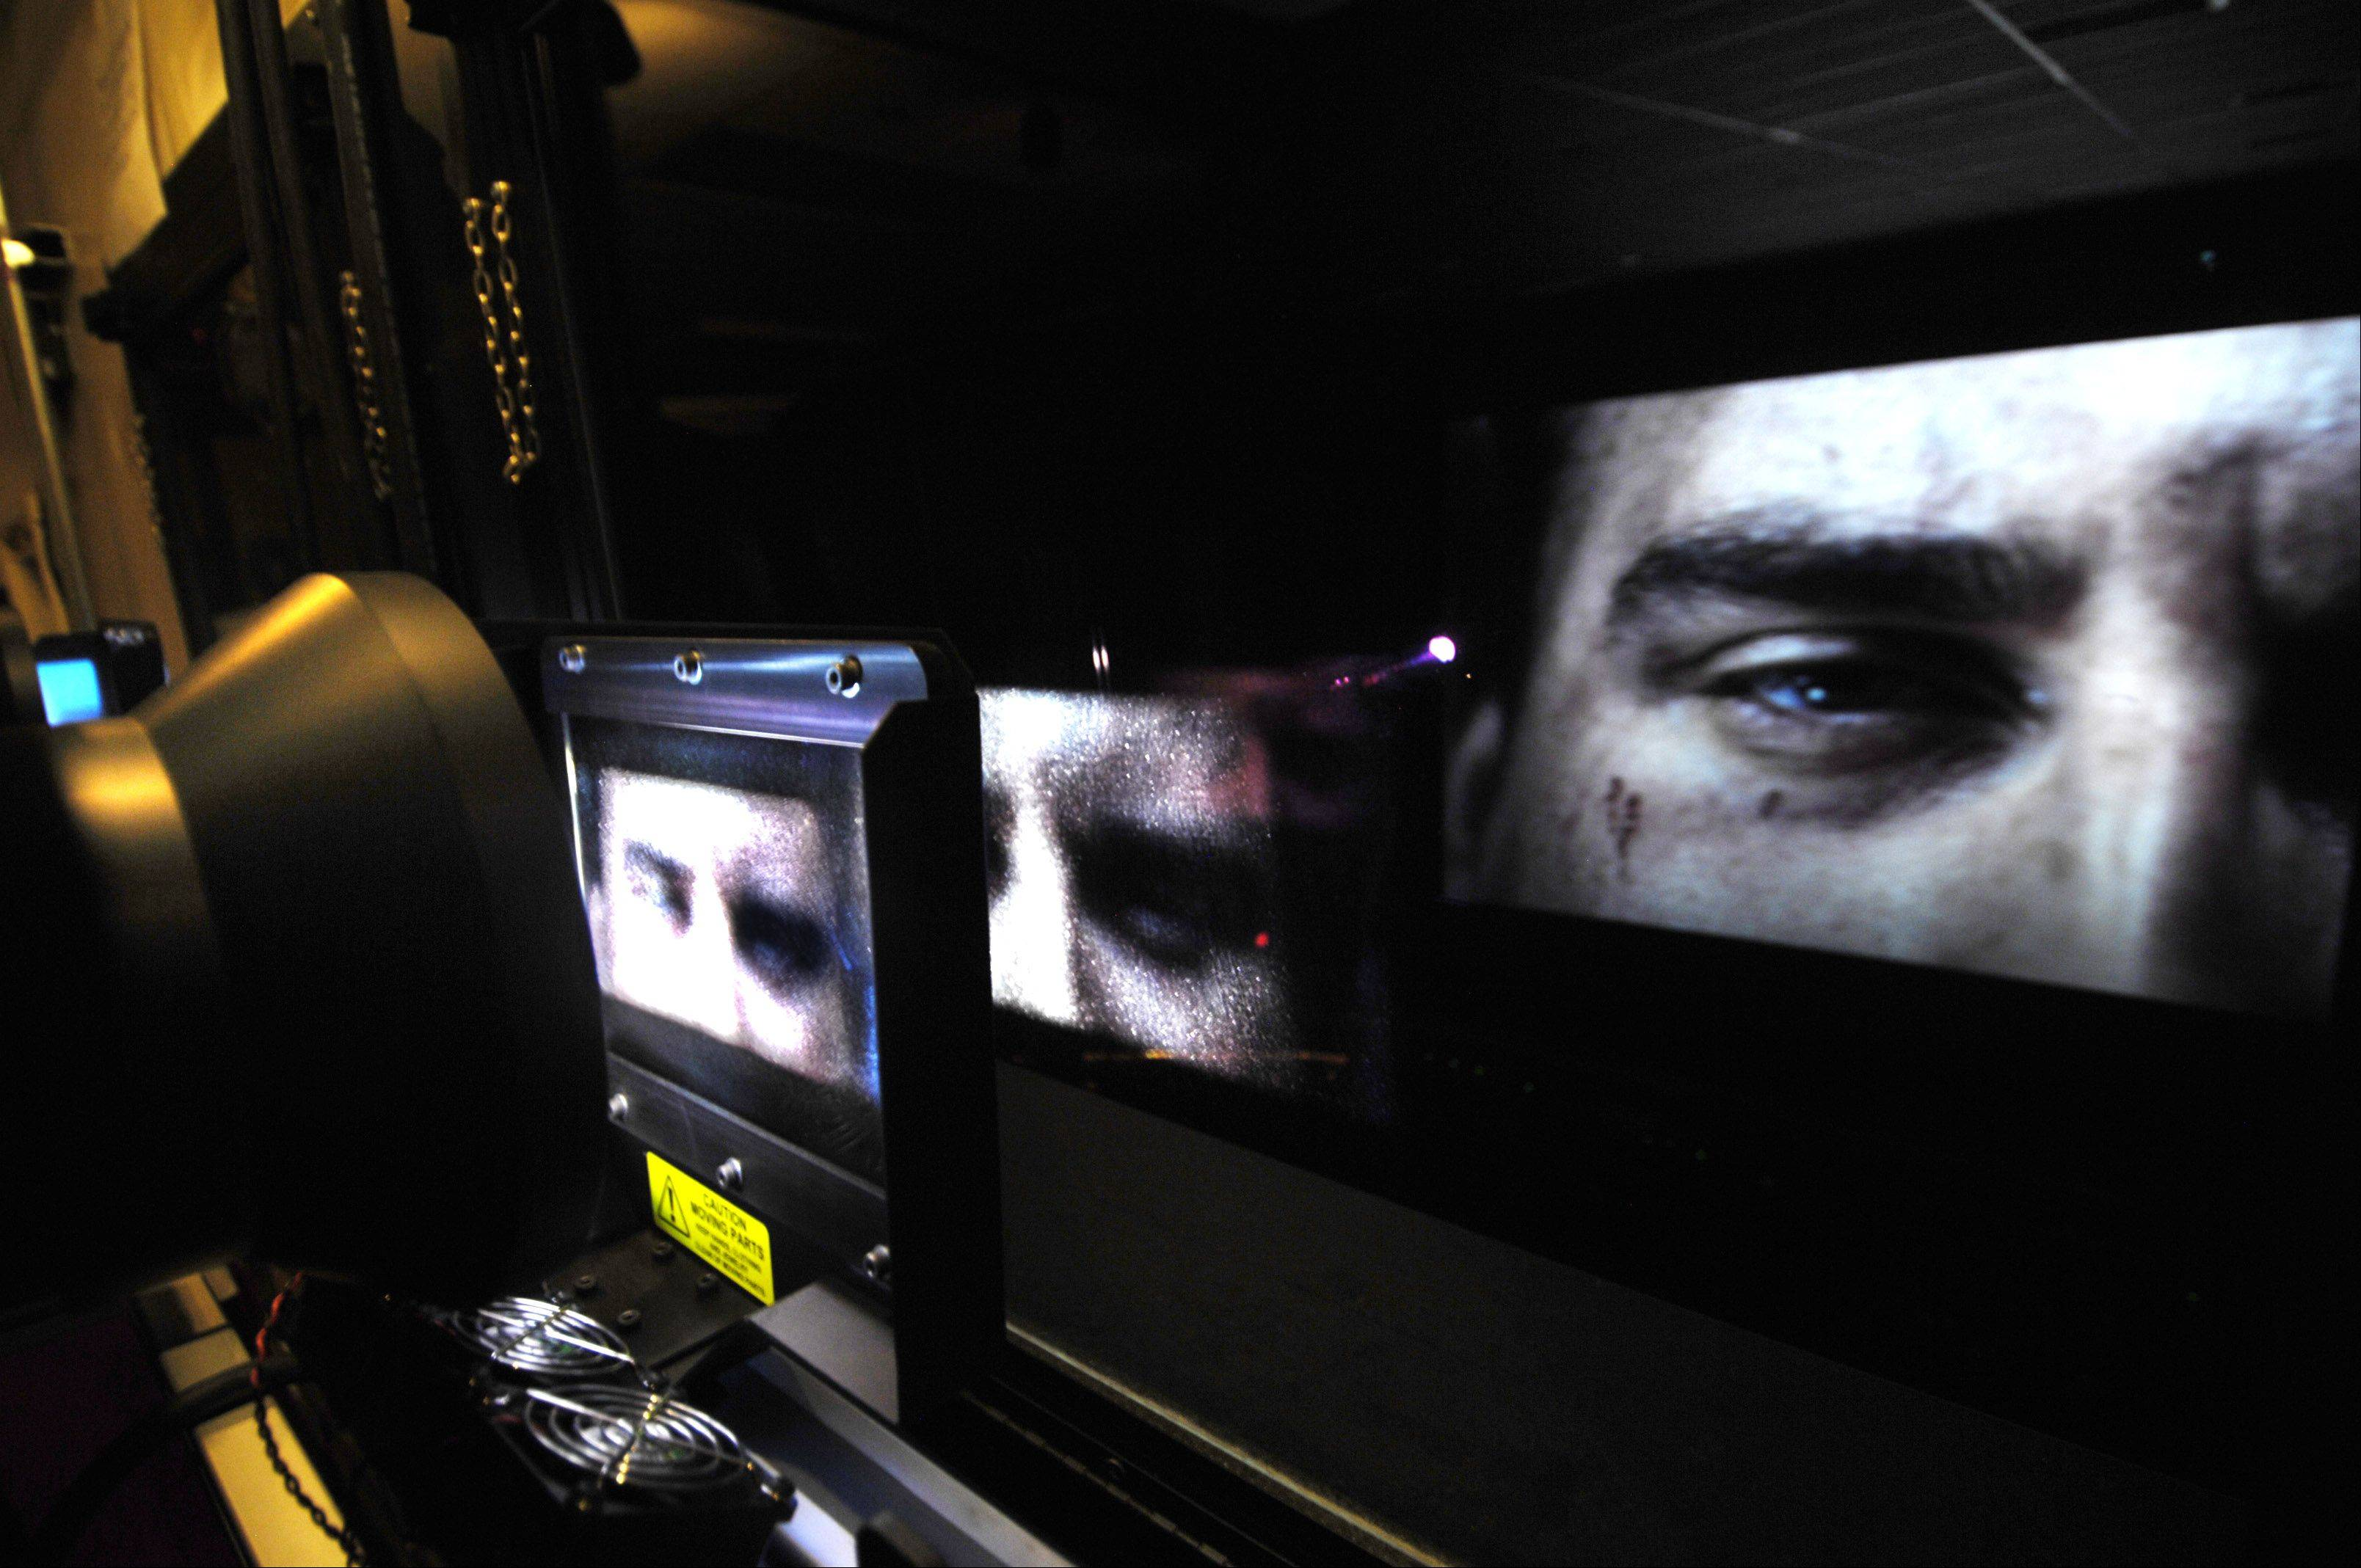 The movie image is projected through a polarized lens in the projection booth. Coupled with the polarized IMAX movie glasses worn by viewers, a 3-D image is created.